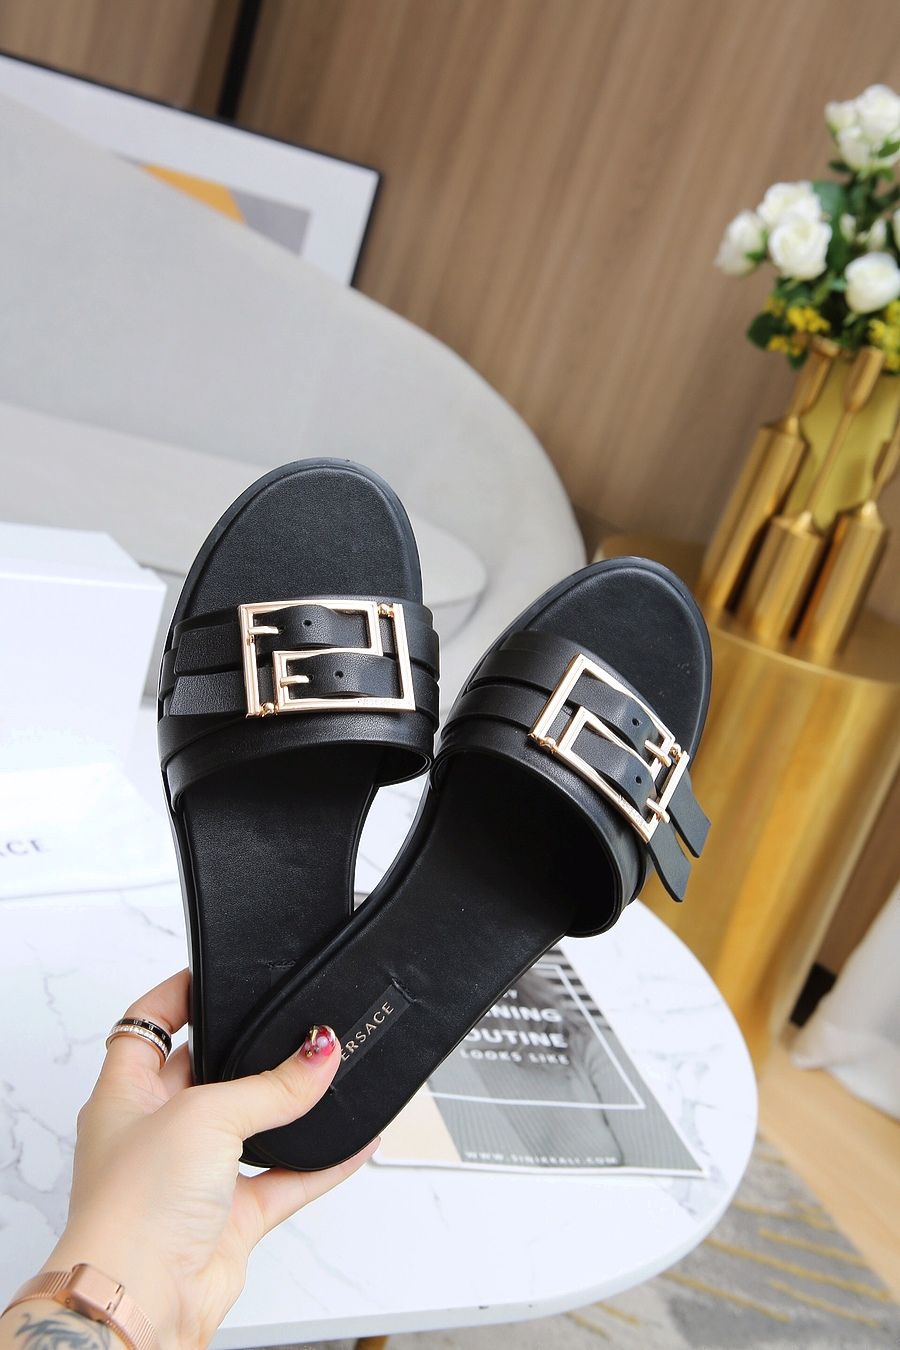 Versace shoes for versace Slippers for Women #443890 replica